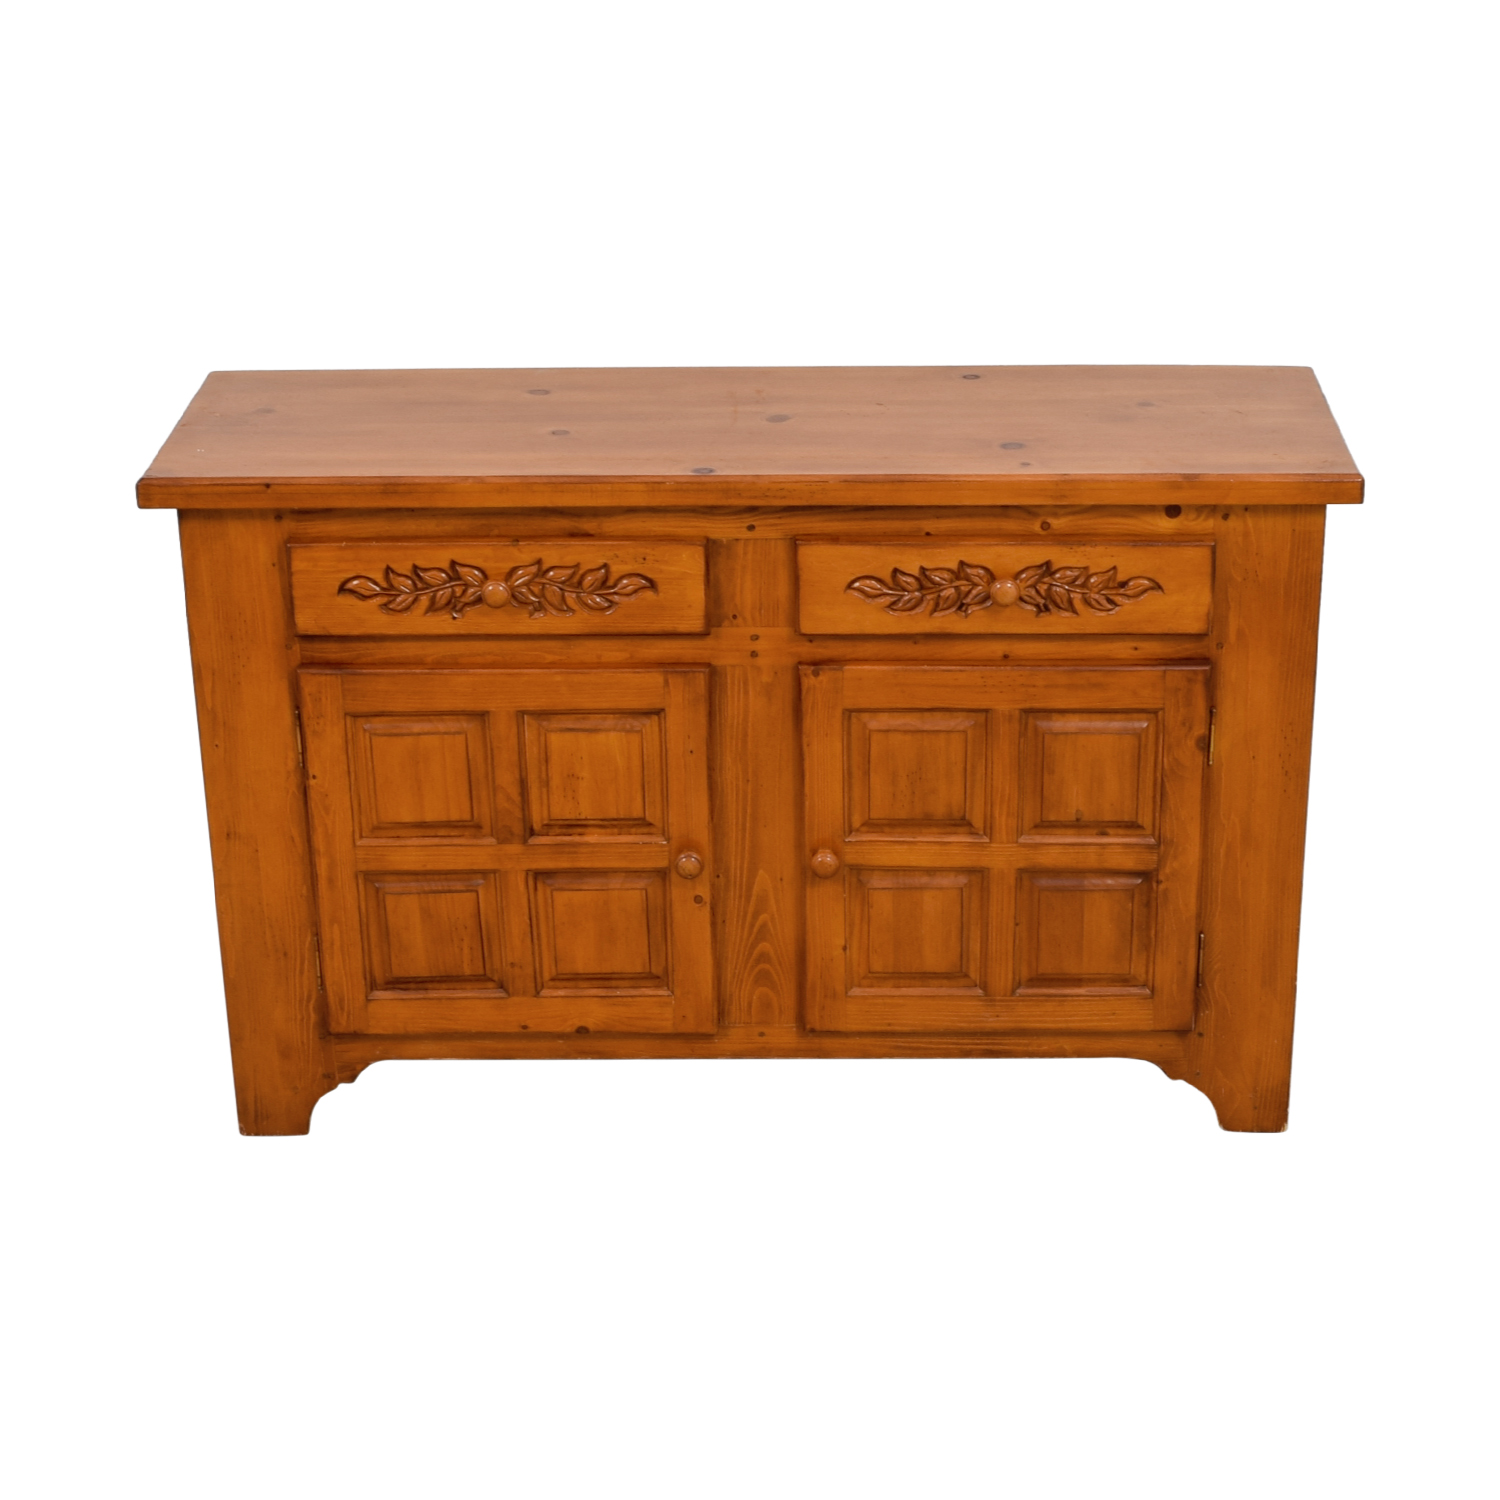 Antique Two-Drawer Credenza / Cabinets & Sideboards